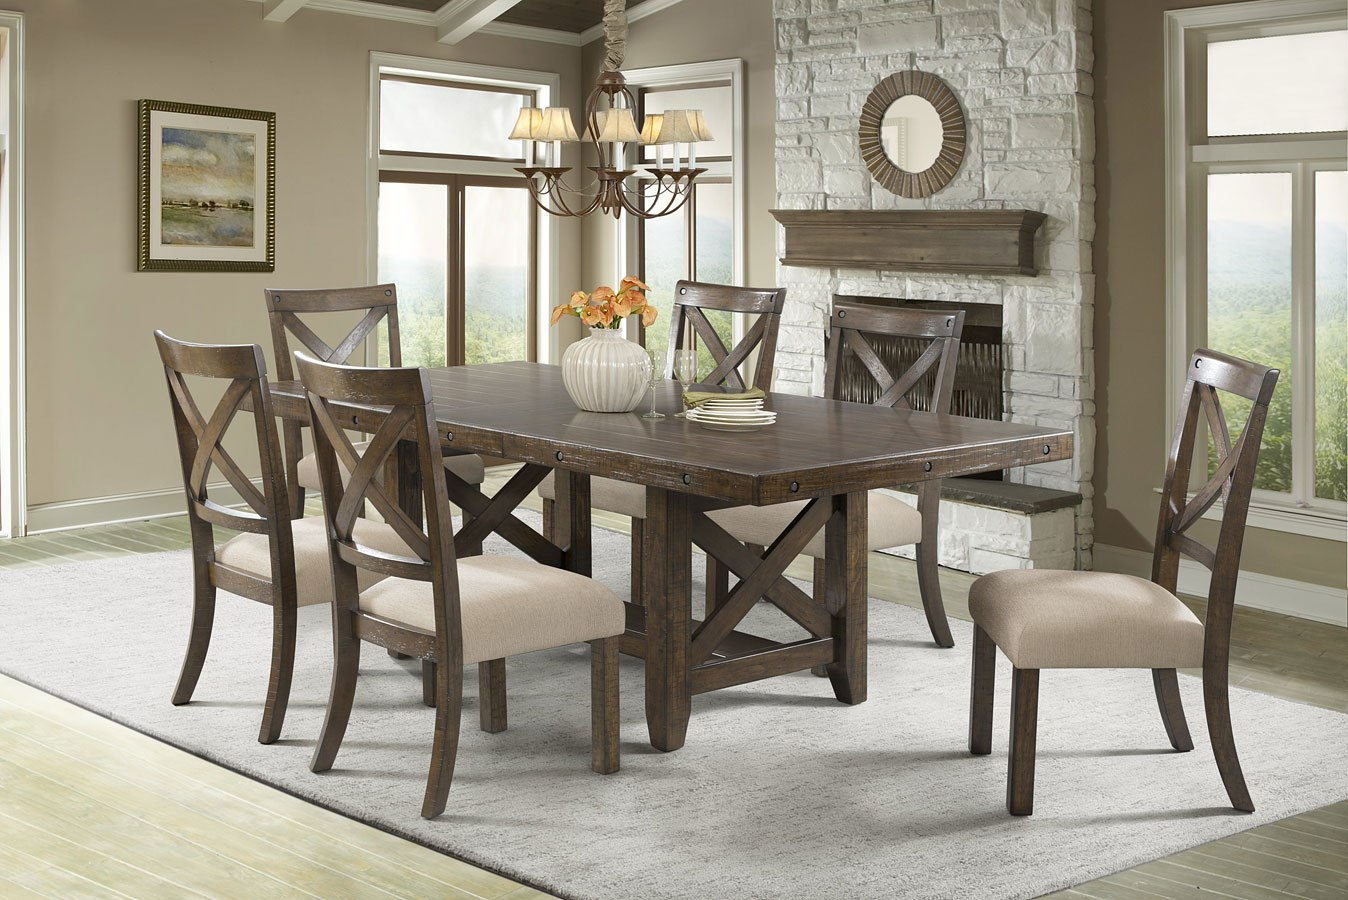 franklin dining room set elements furniture furniture cart. Black Bedroom Furniture Sets. Home Design Ideas